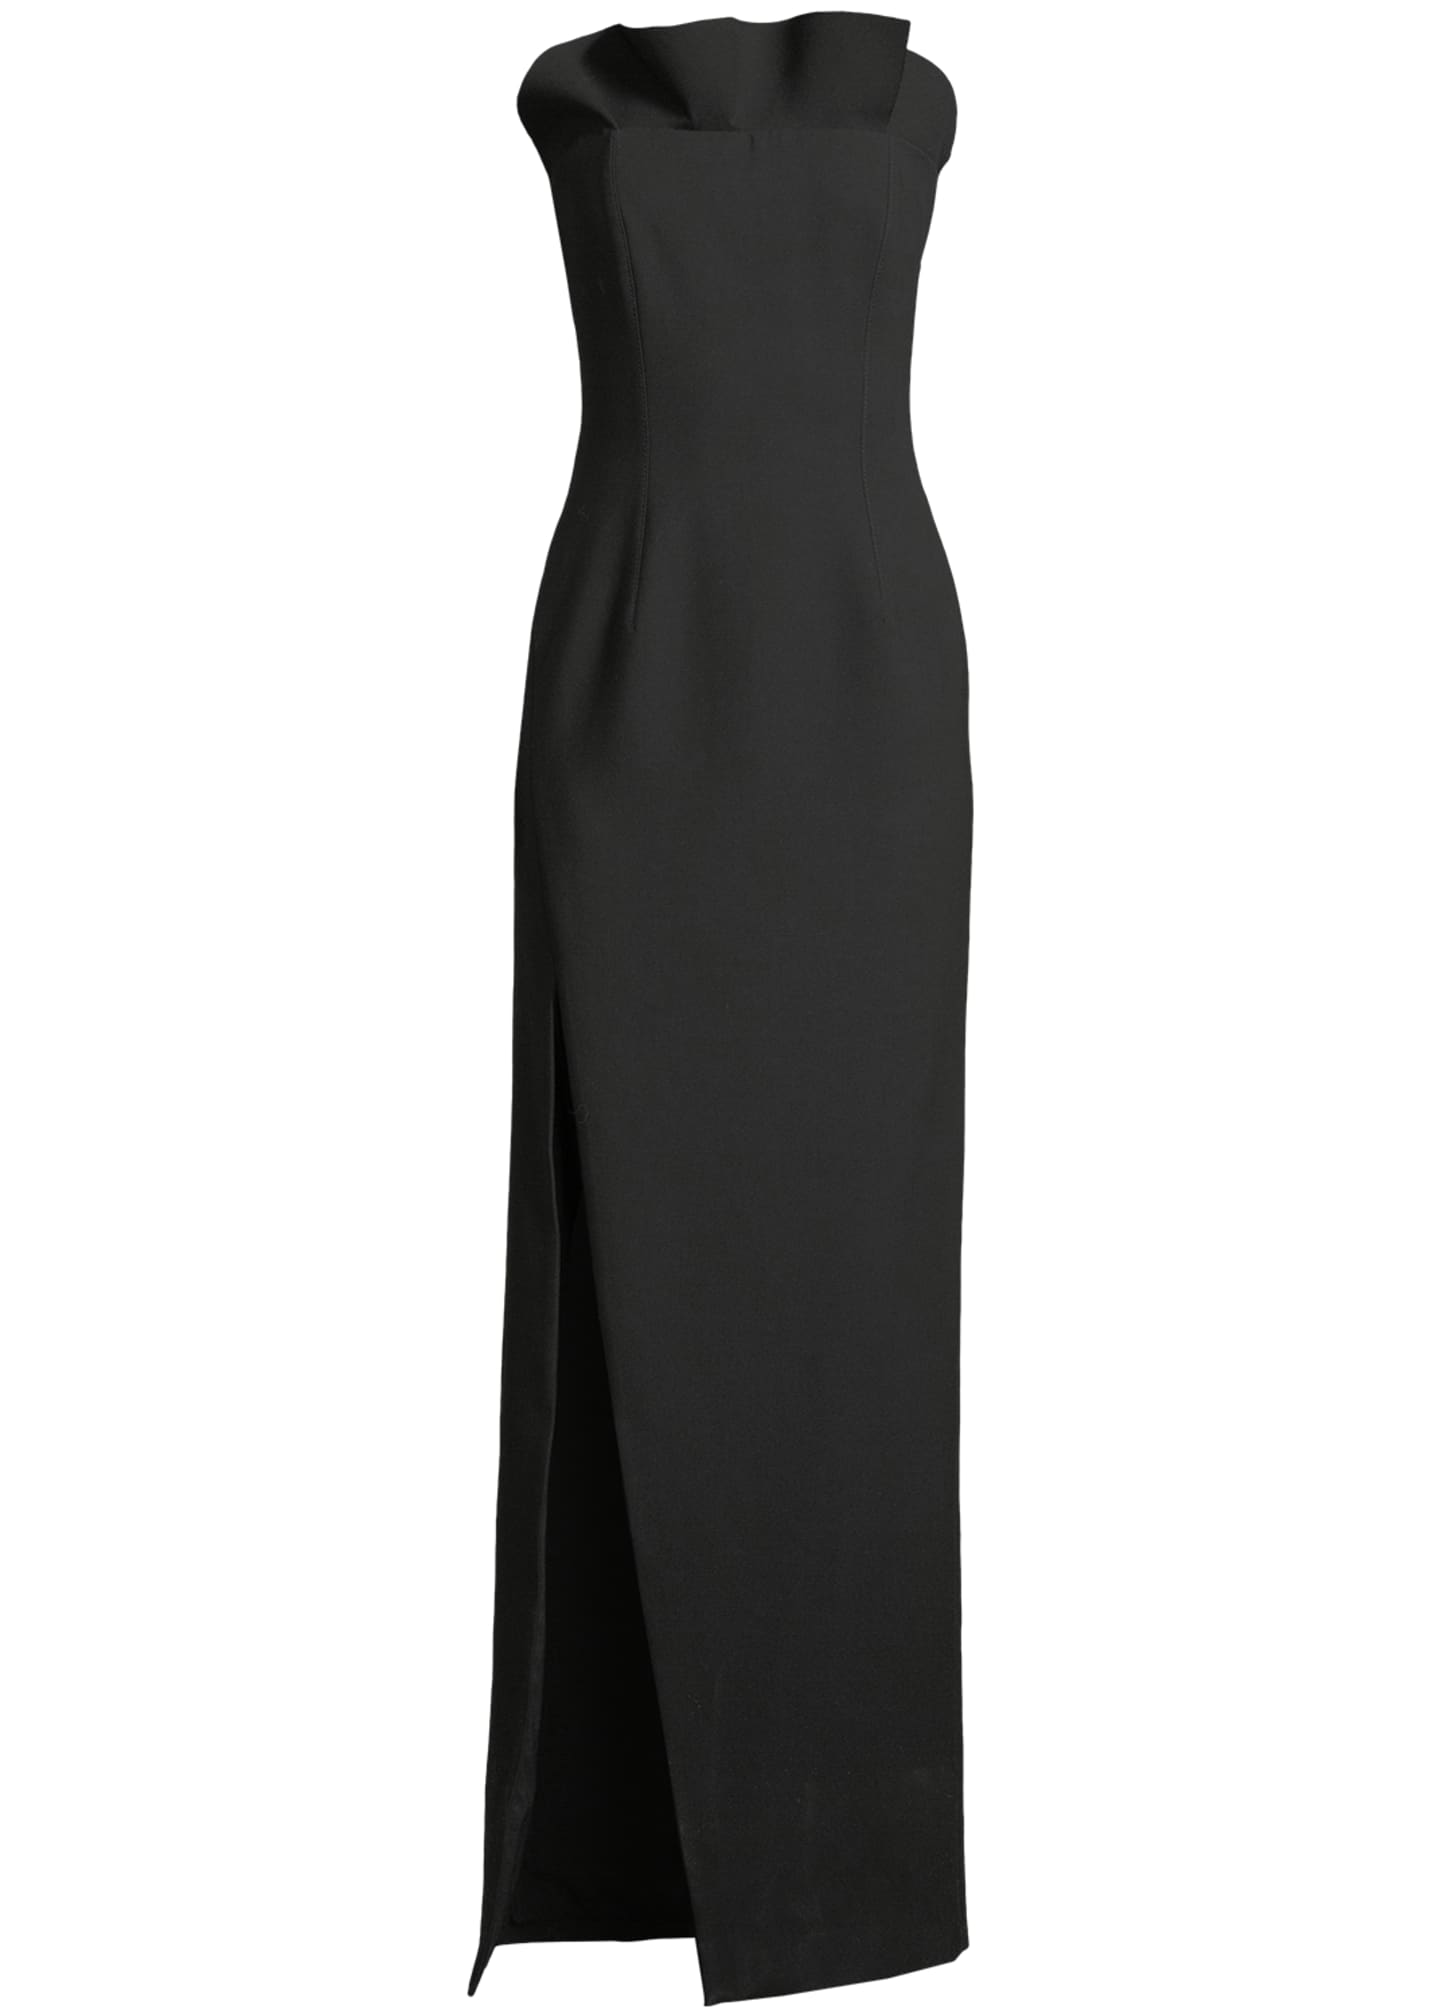 Image 4 of 4: Kiera Strapless Side-Slit Frill Gown